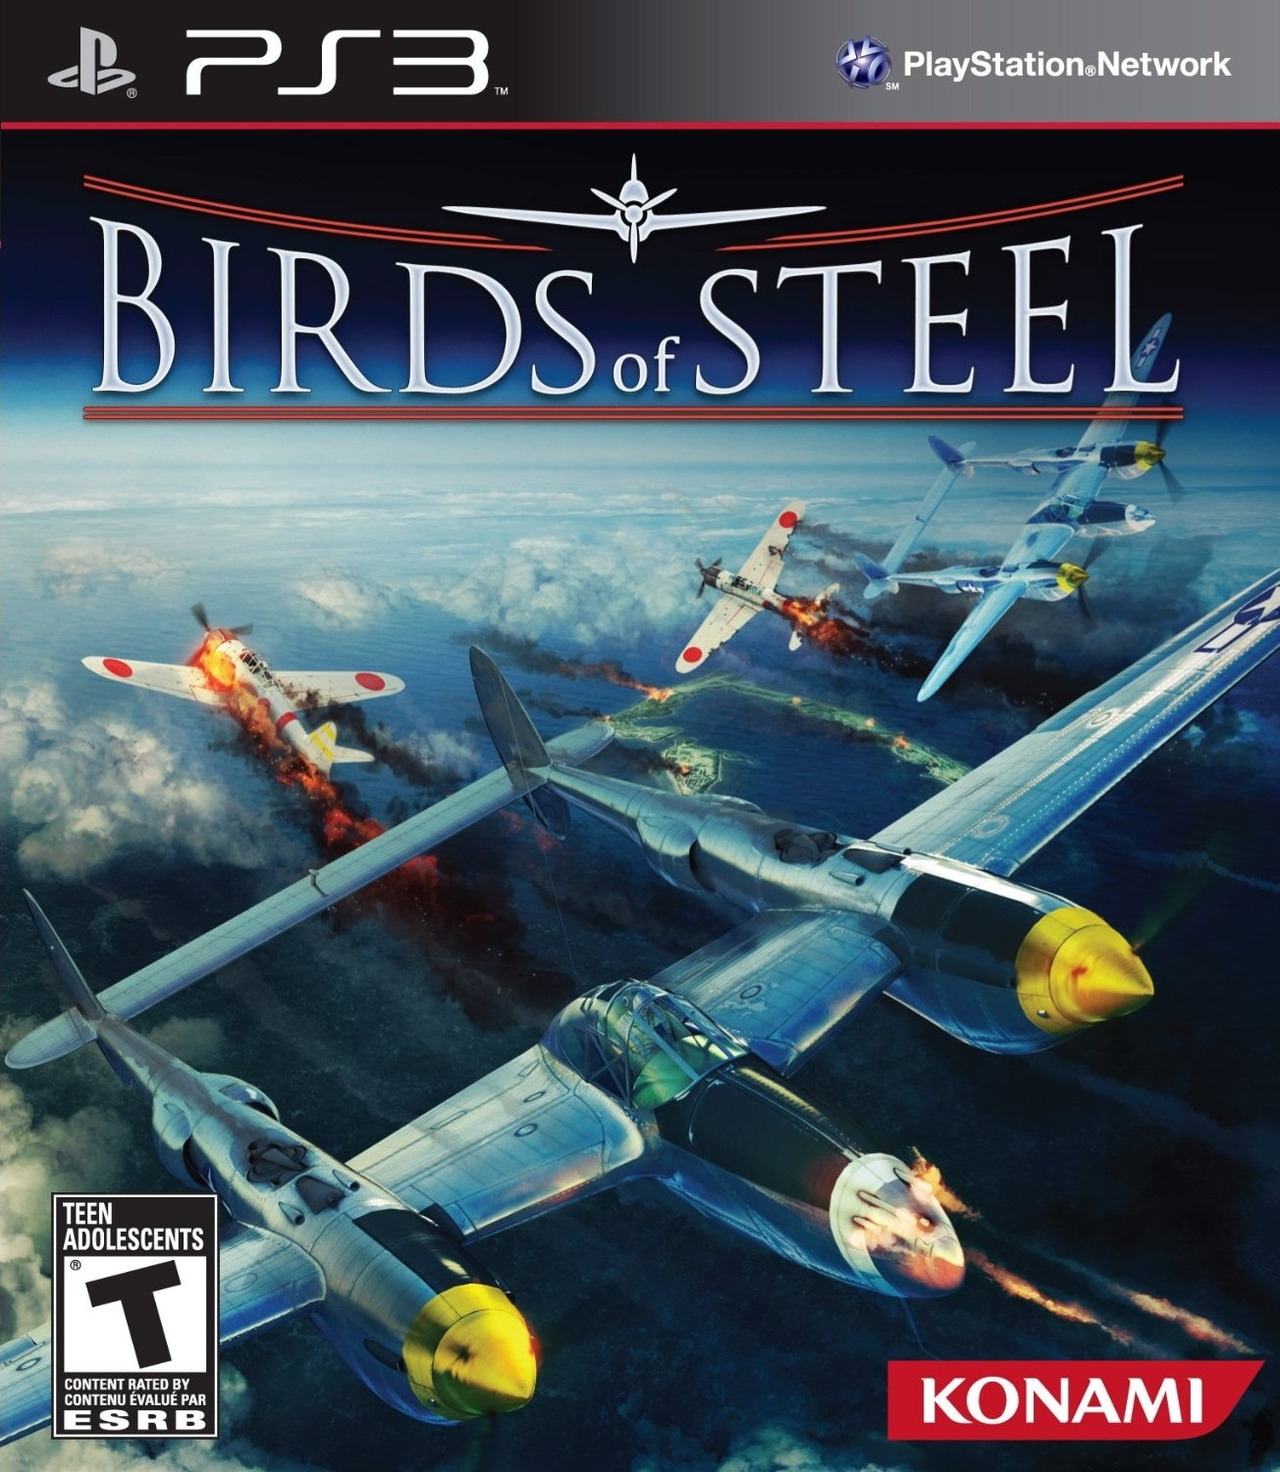 http://image.jeuxvideo.com/images/jaquettes/00040913/jaquette-birds-of-steel-playstation-3-ps3-cover-avant-g-1327074584.jpg